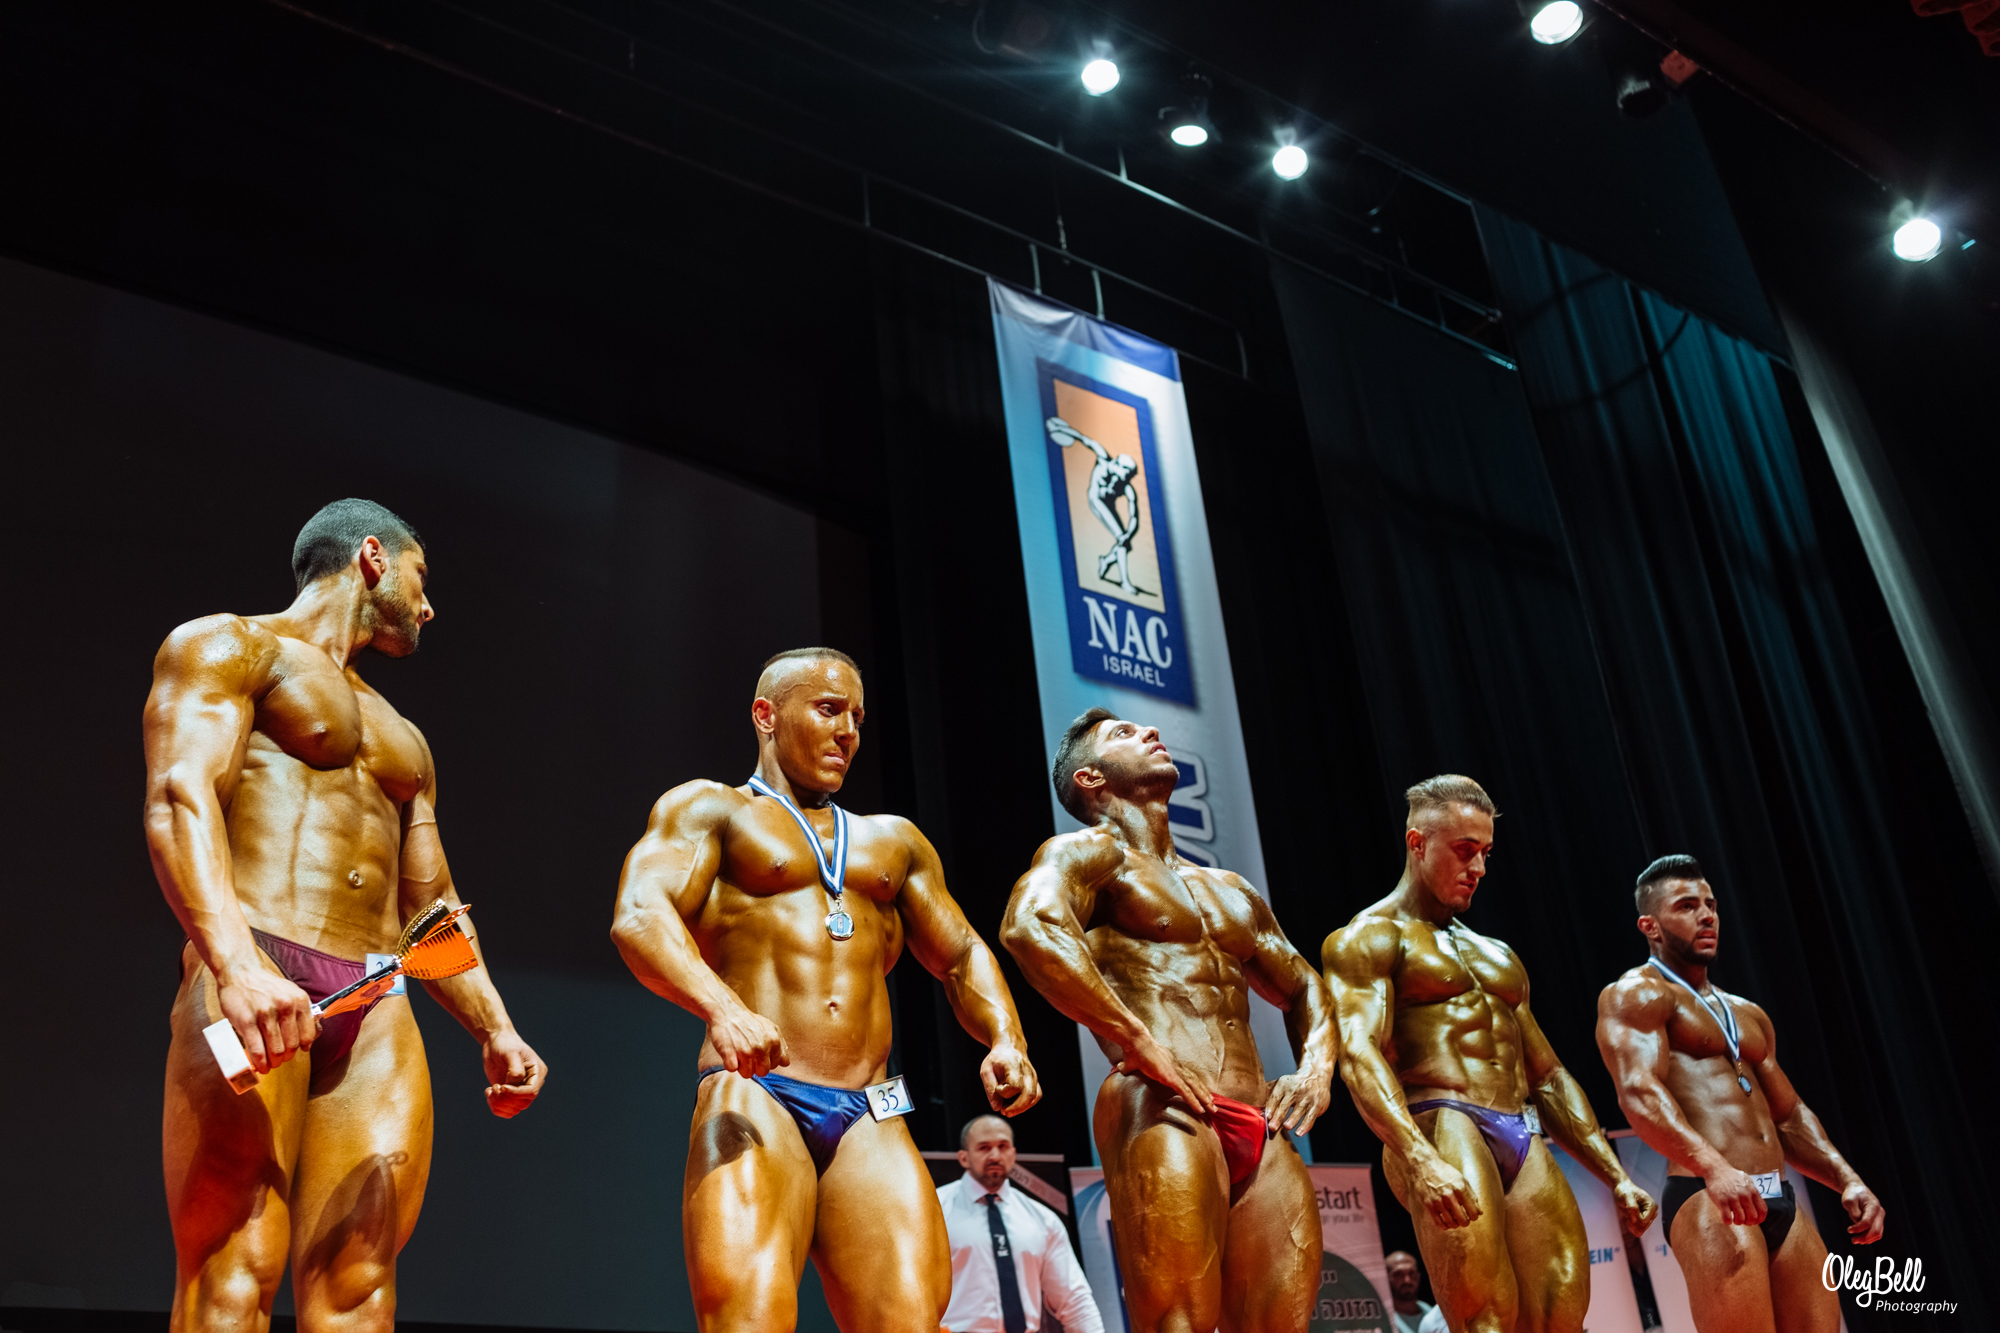 NICOLE_BODYBUILDING_COMPETITIONS_0251.jpg